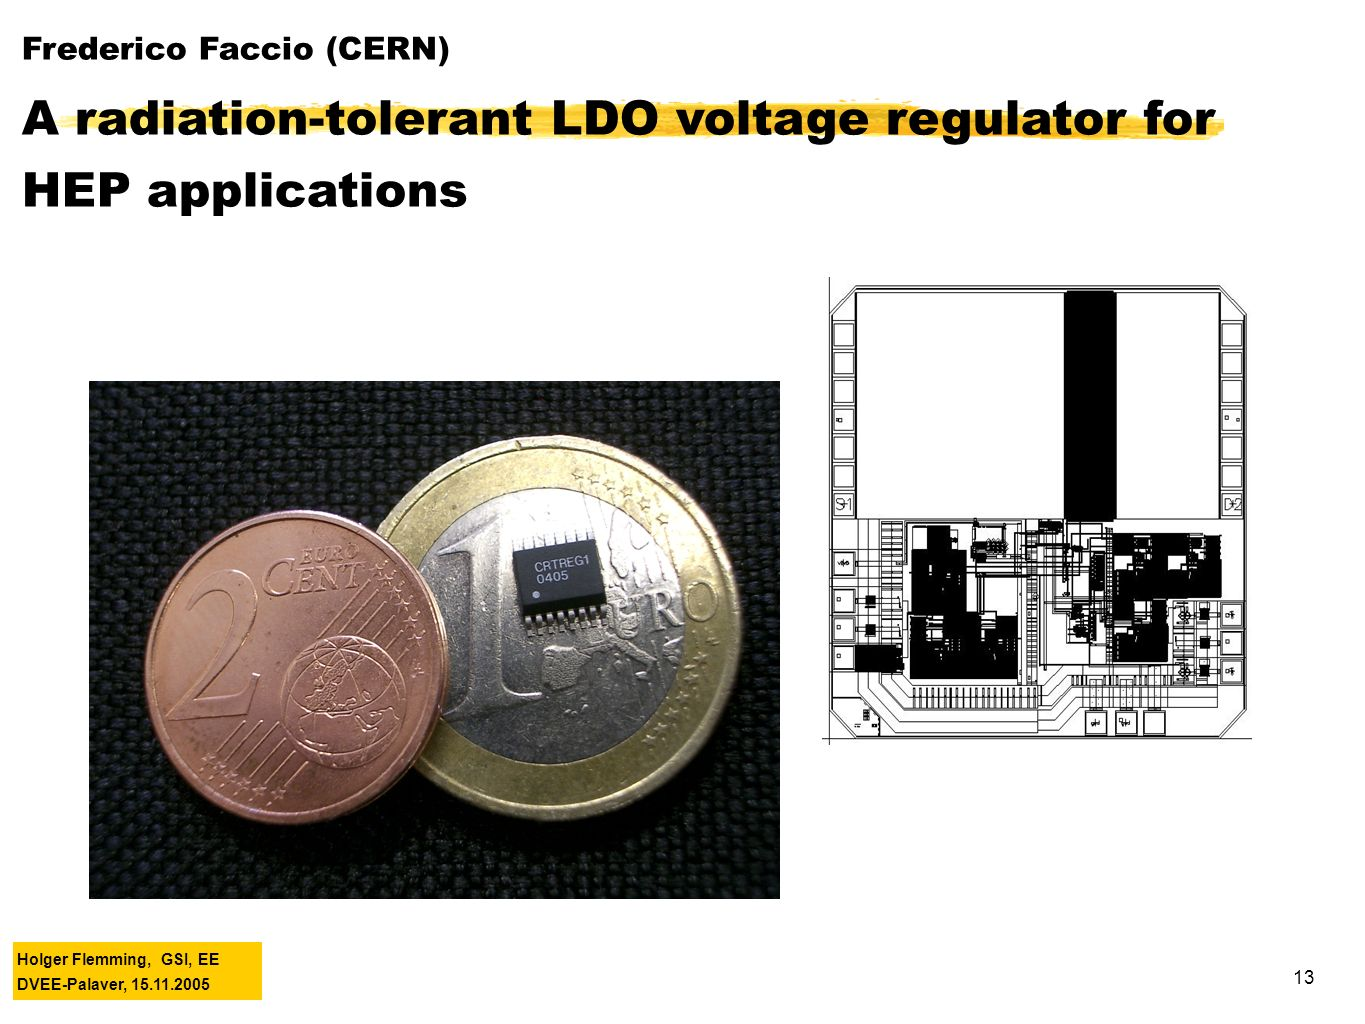 Holger Flemming, GSI, EE DVEE-Palaver, Frederico Faccio (CERN) A radiation-tolerant LDO voltage regulator for HEP applications